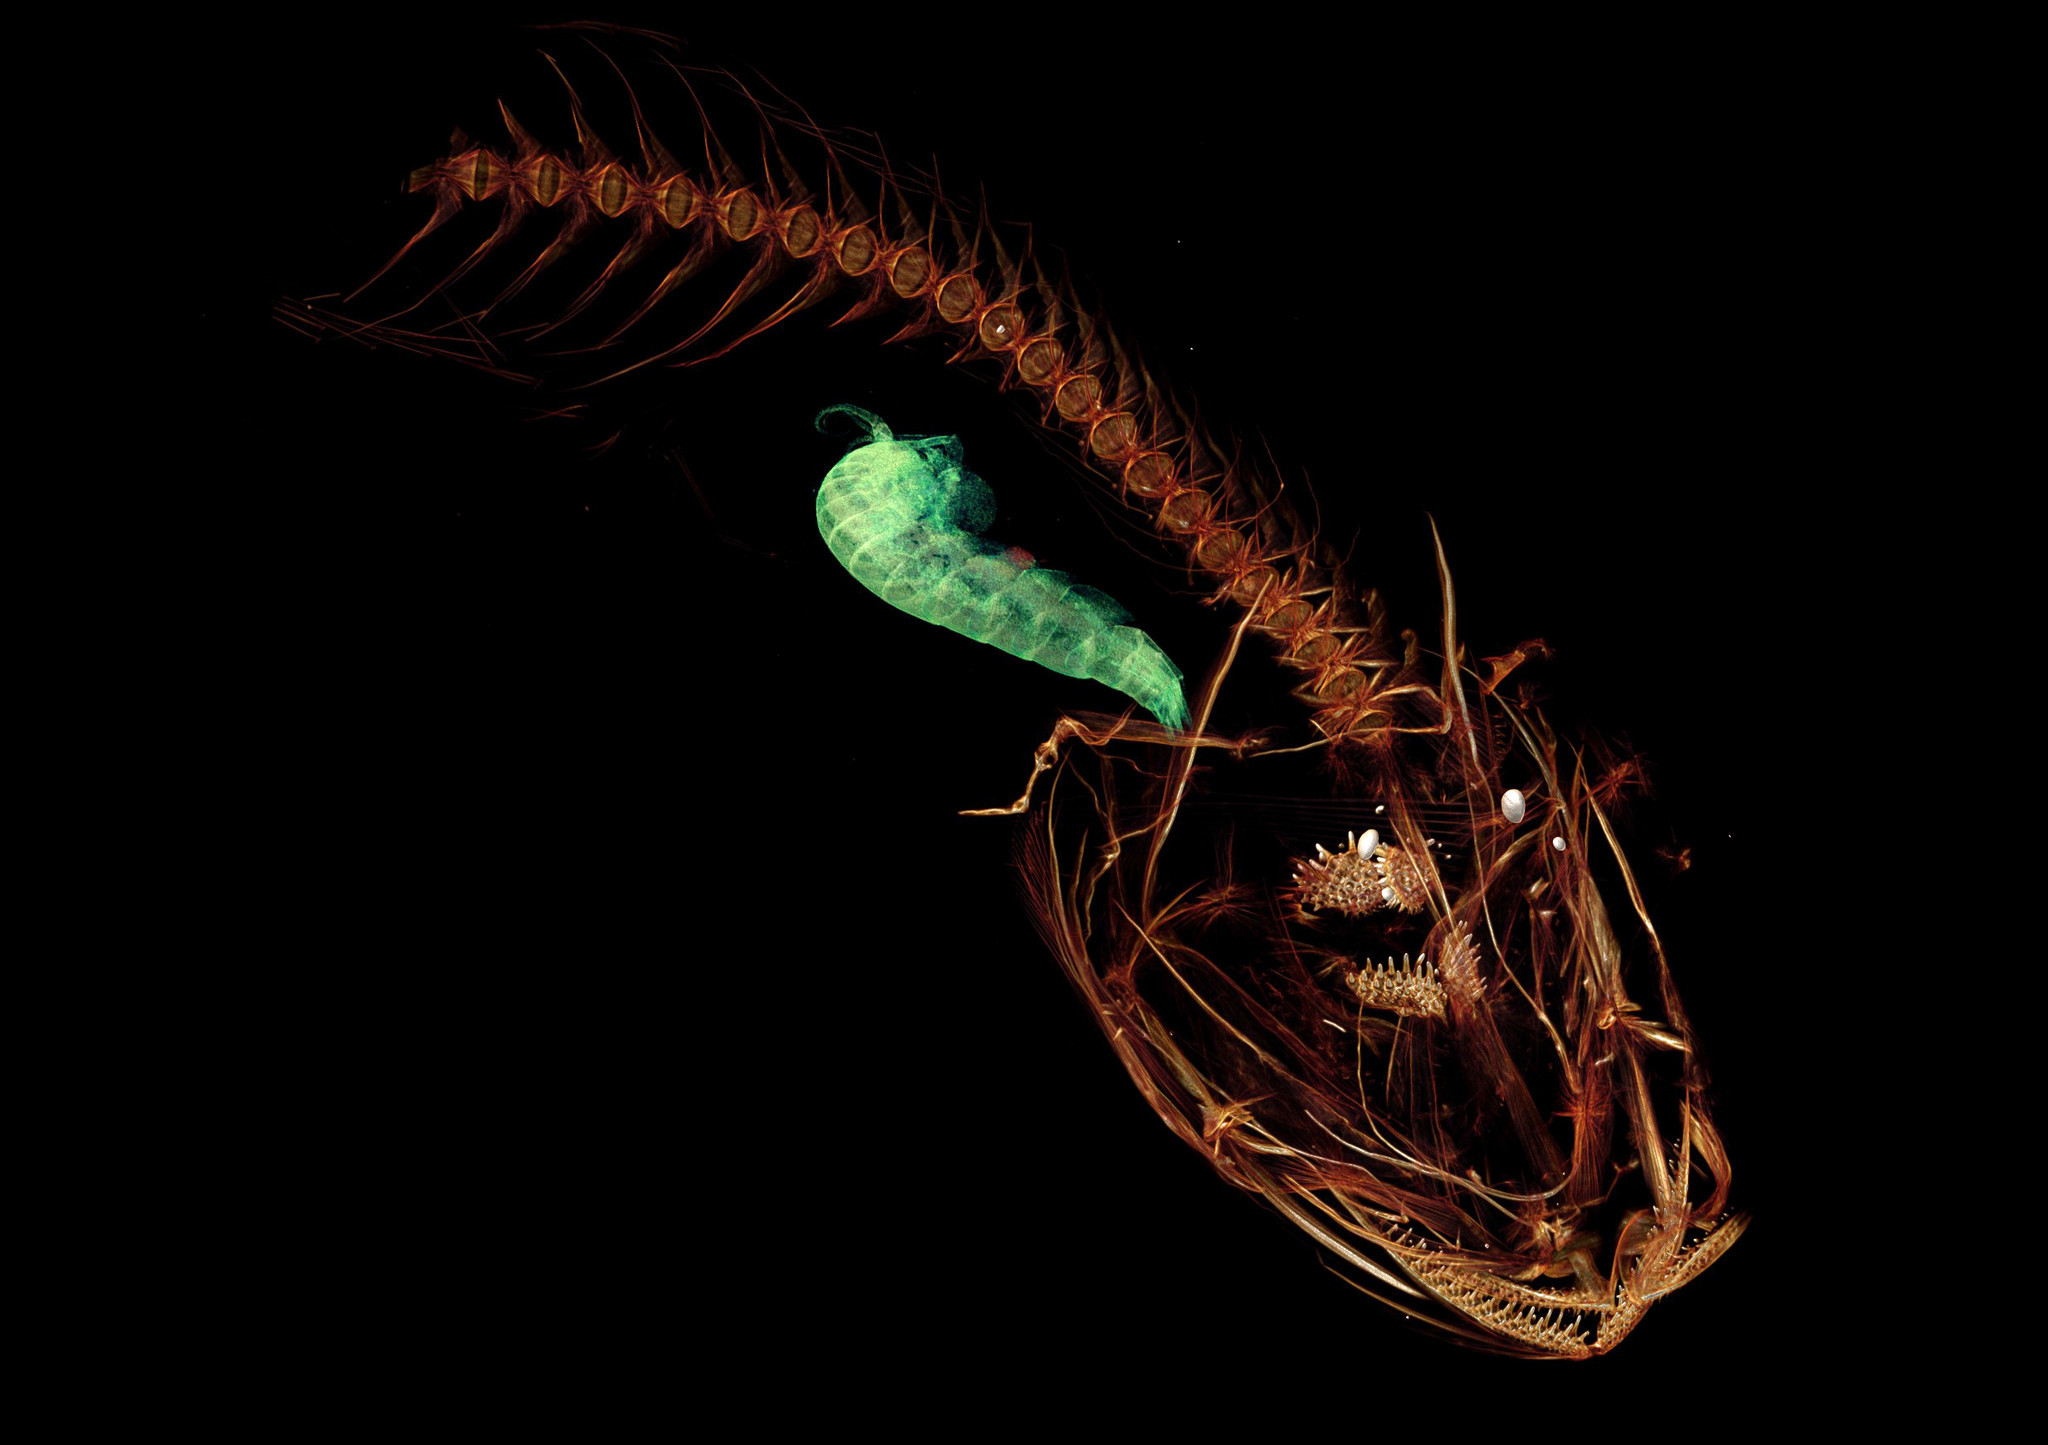 The Mariana snailfish